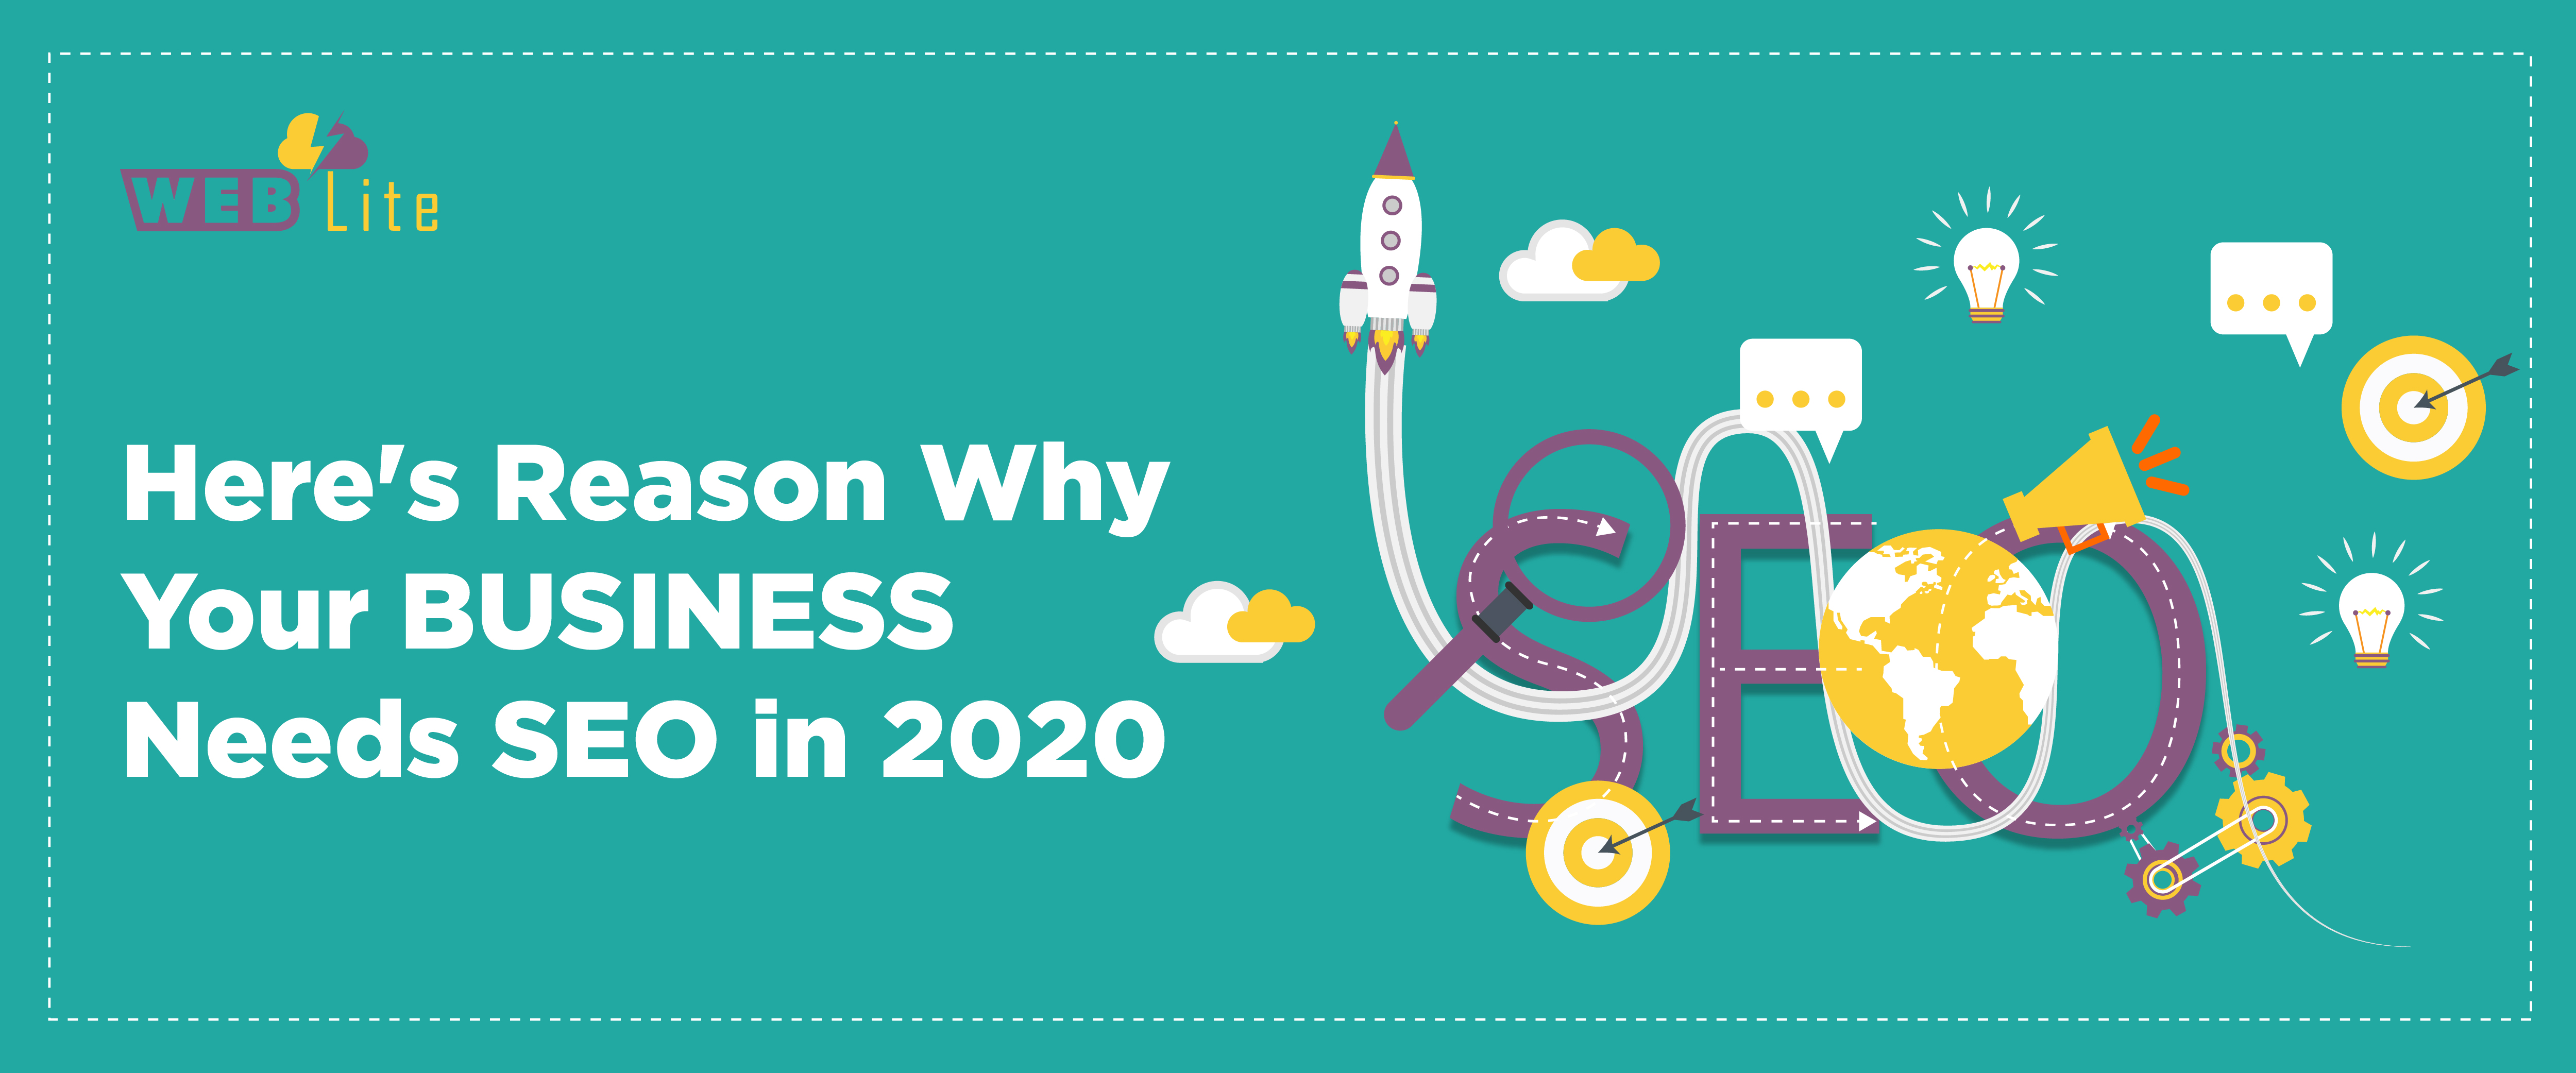 Here's Reason Why Your Business Needs SEO in 2020